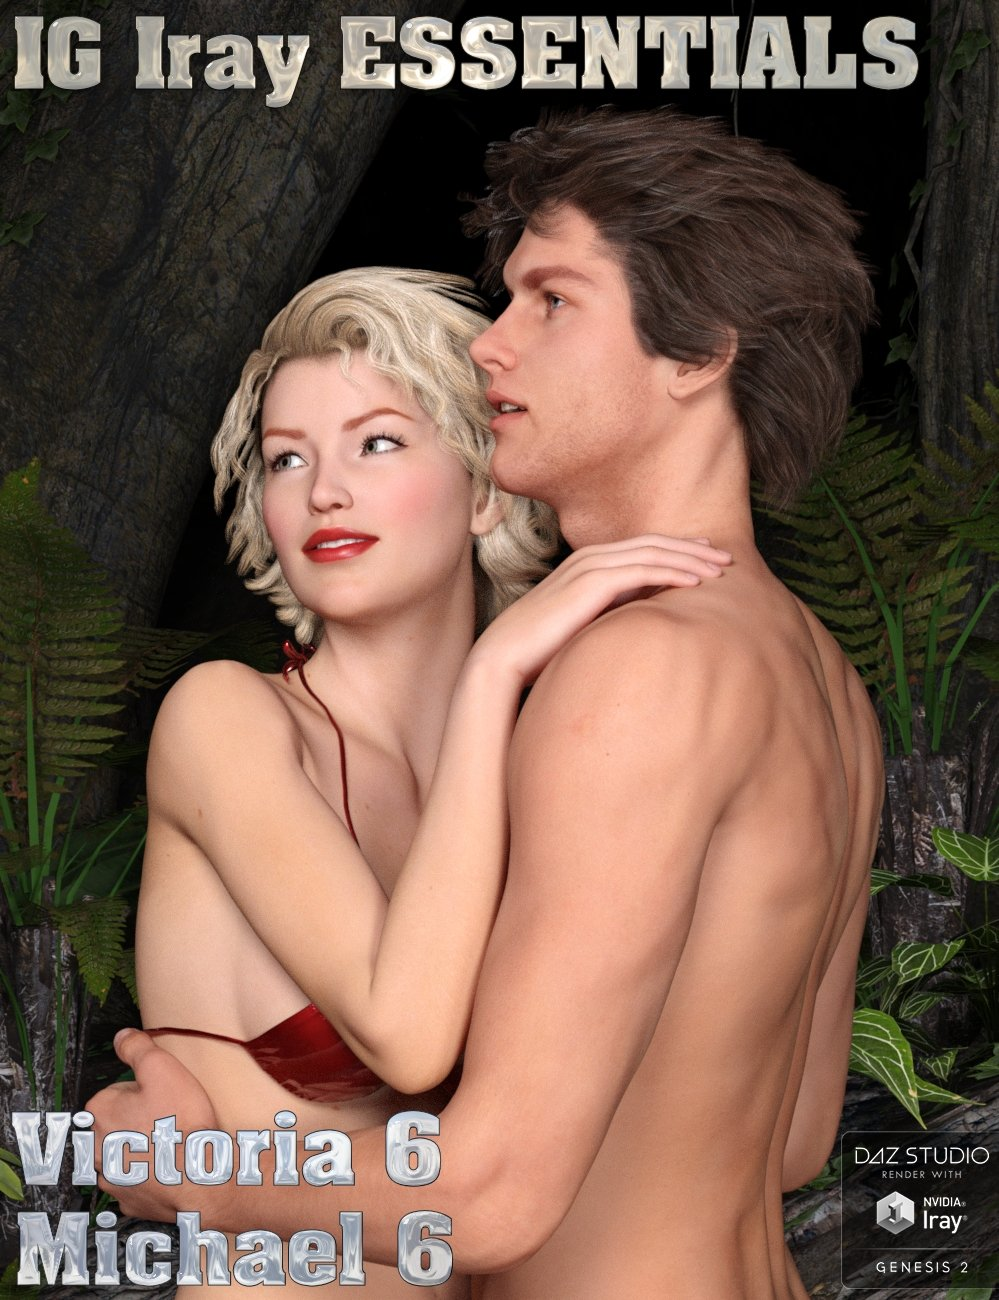 IG Iray Essentials - Victoria 6 & Michael 6 by: IDG DesignsInaneGlory, 3D Models by Daz 3D